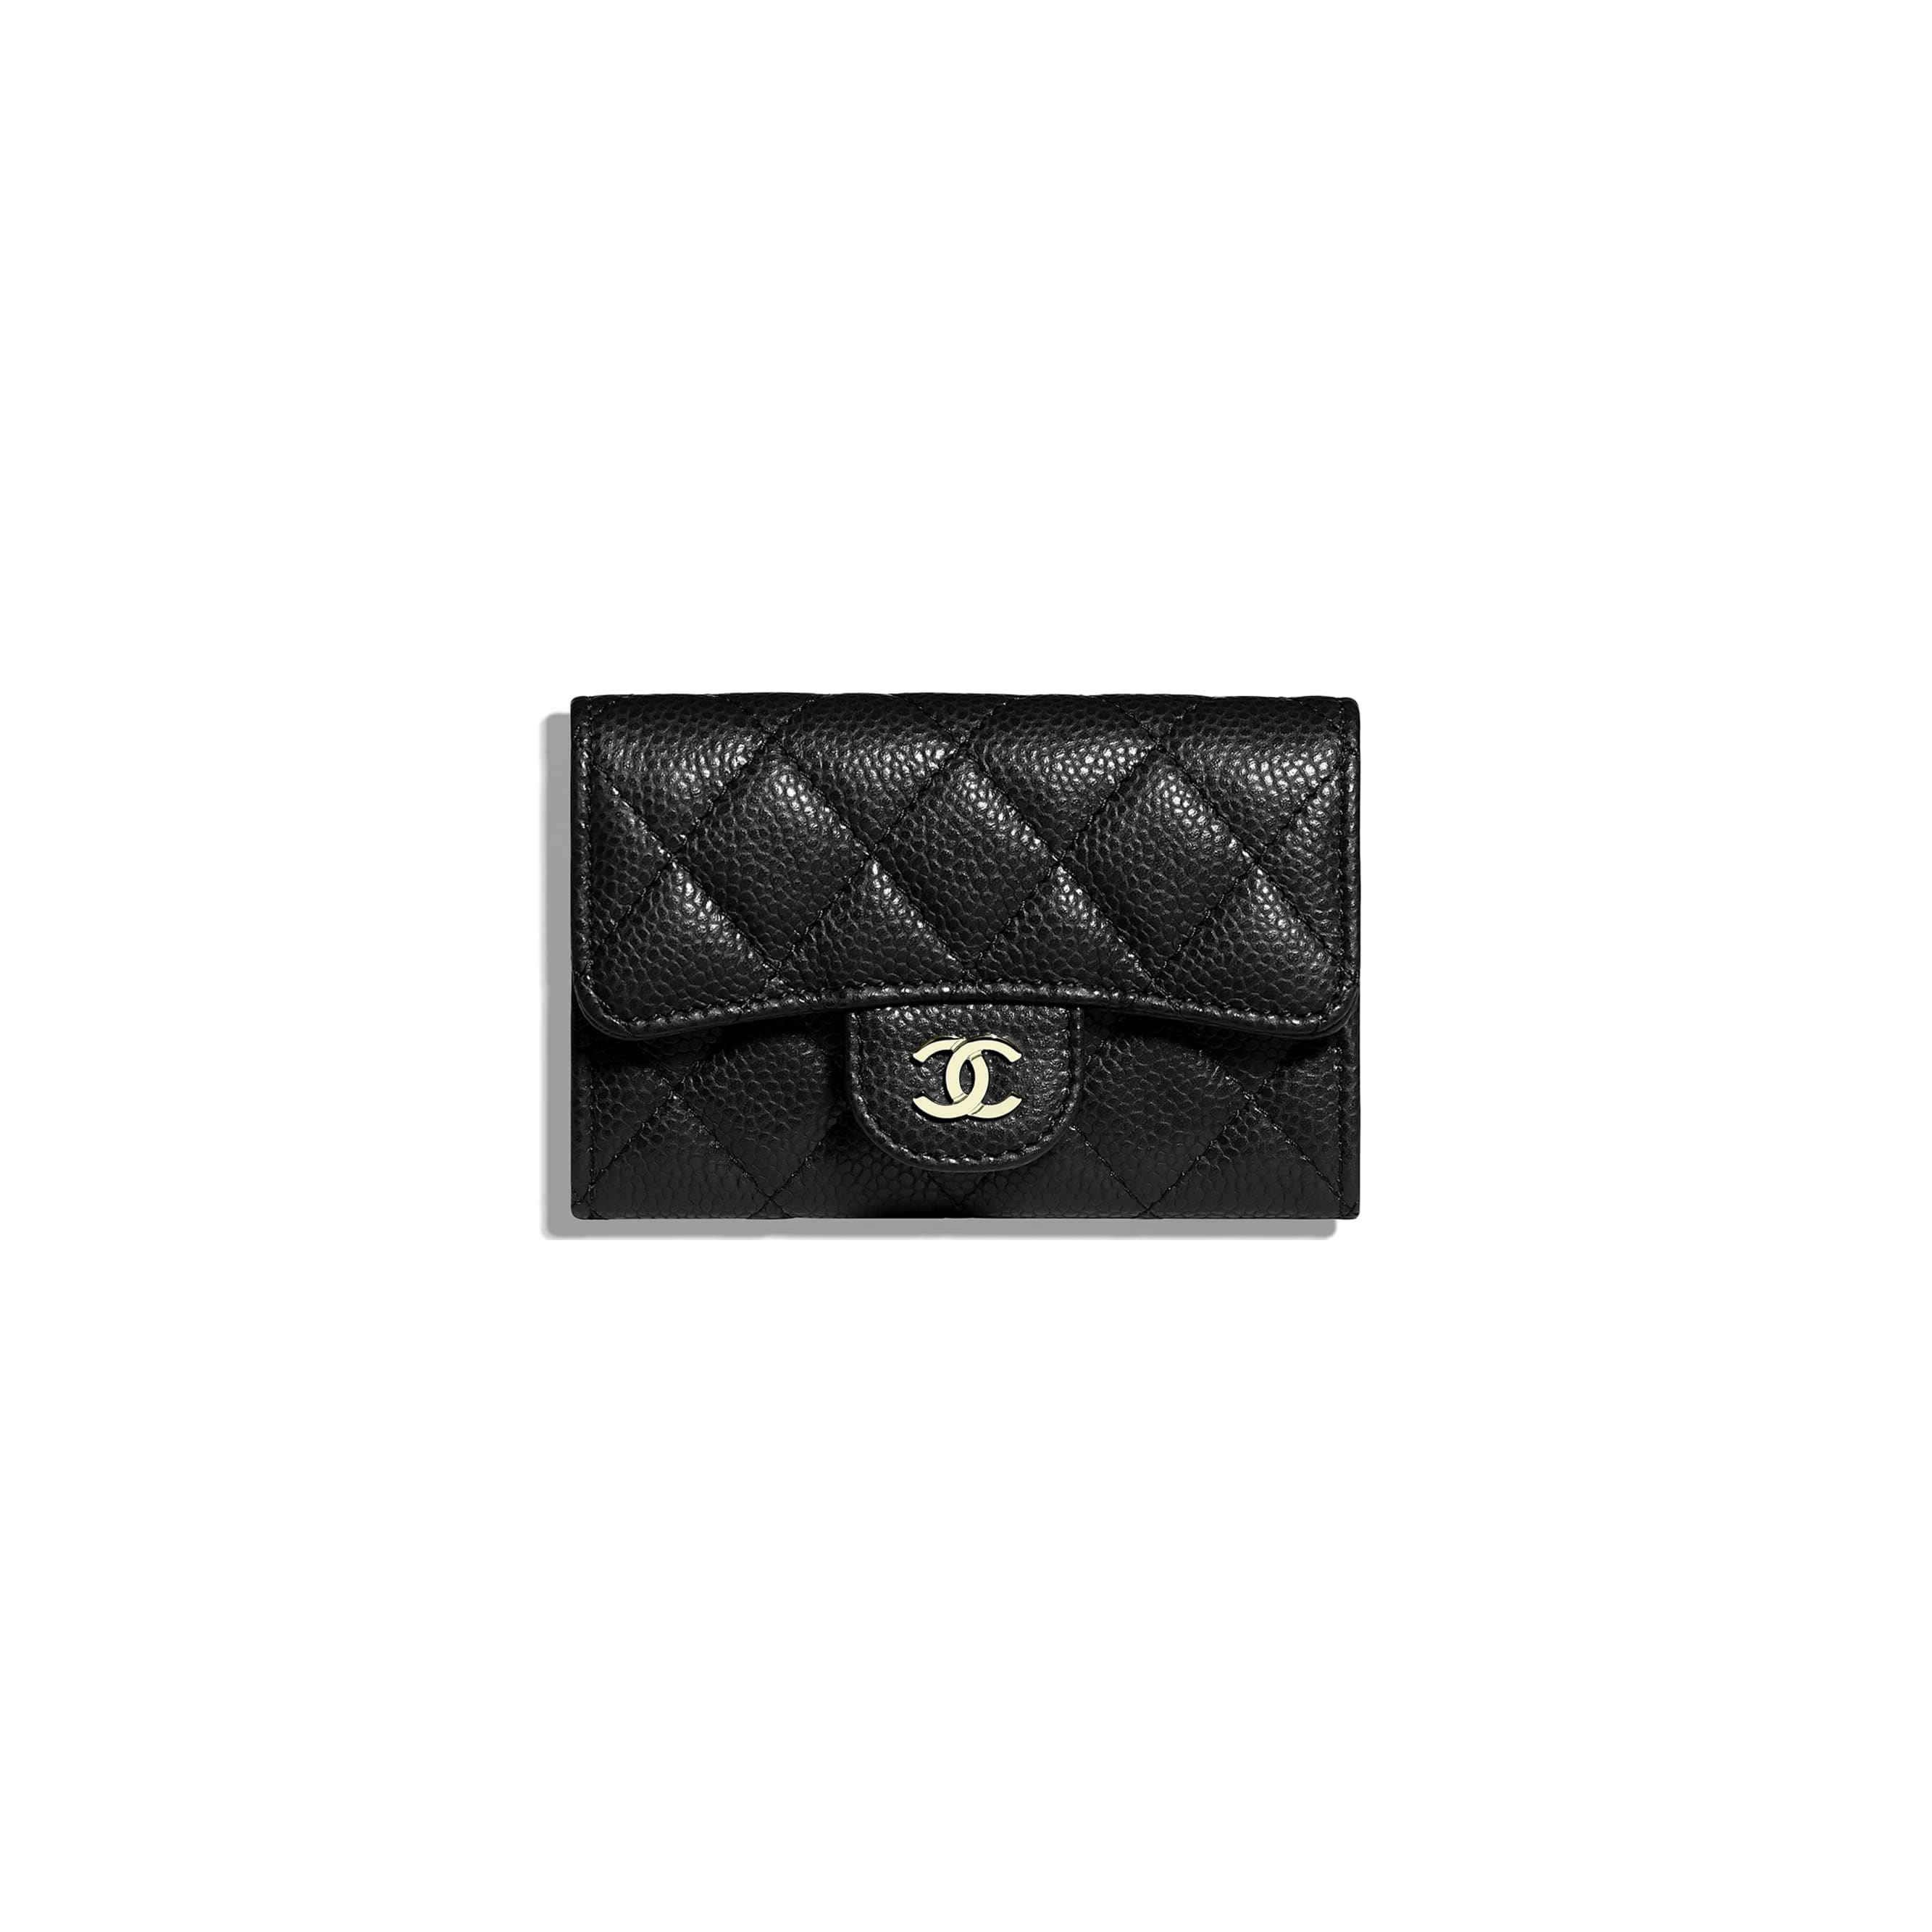 Classic Card Holder - Black - Grained Calfskin & Gold-Tone Metal - CHANEL - Default view - see standard sized version